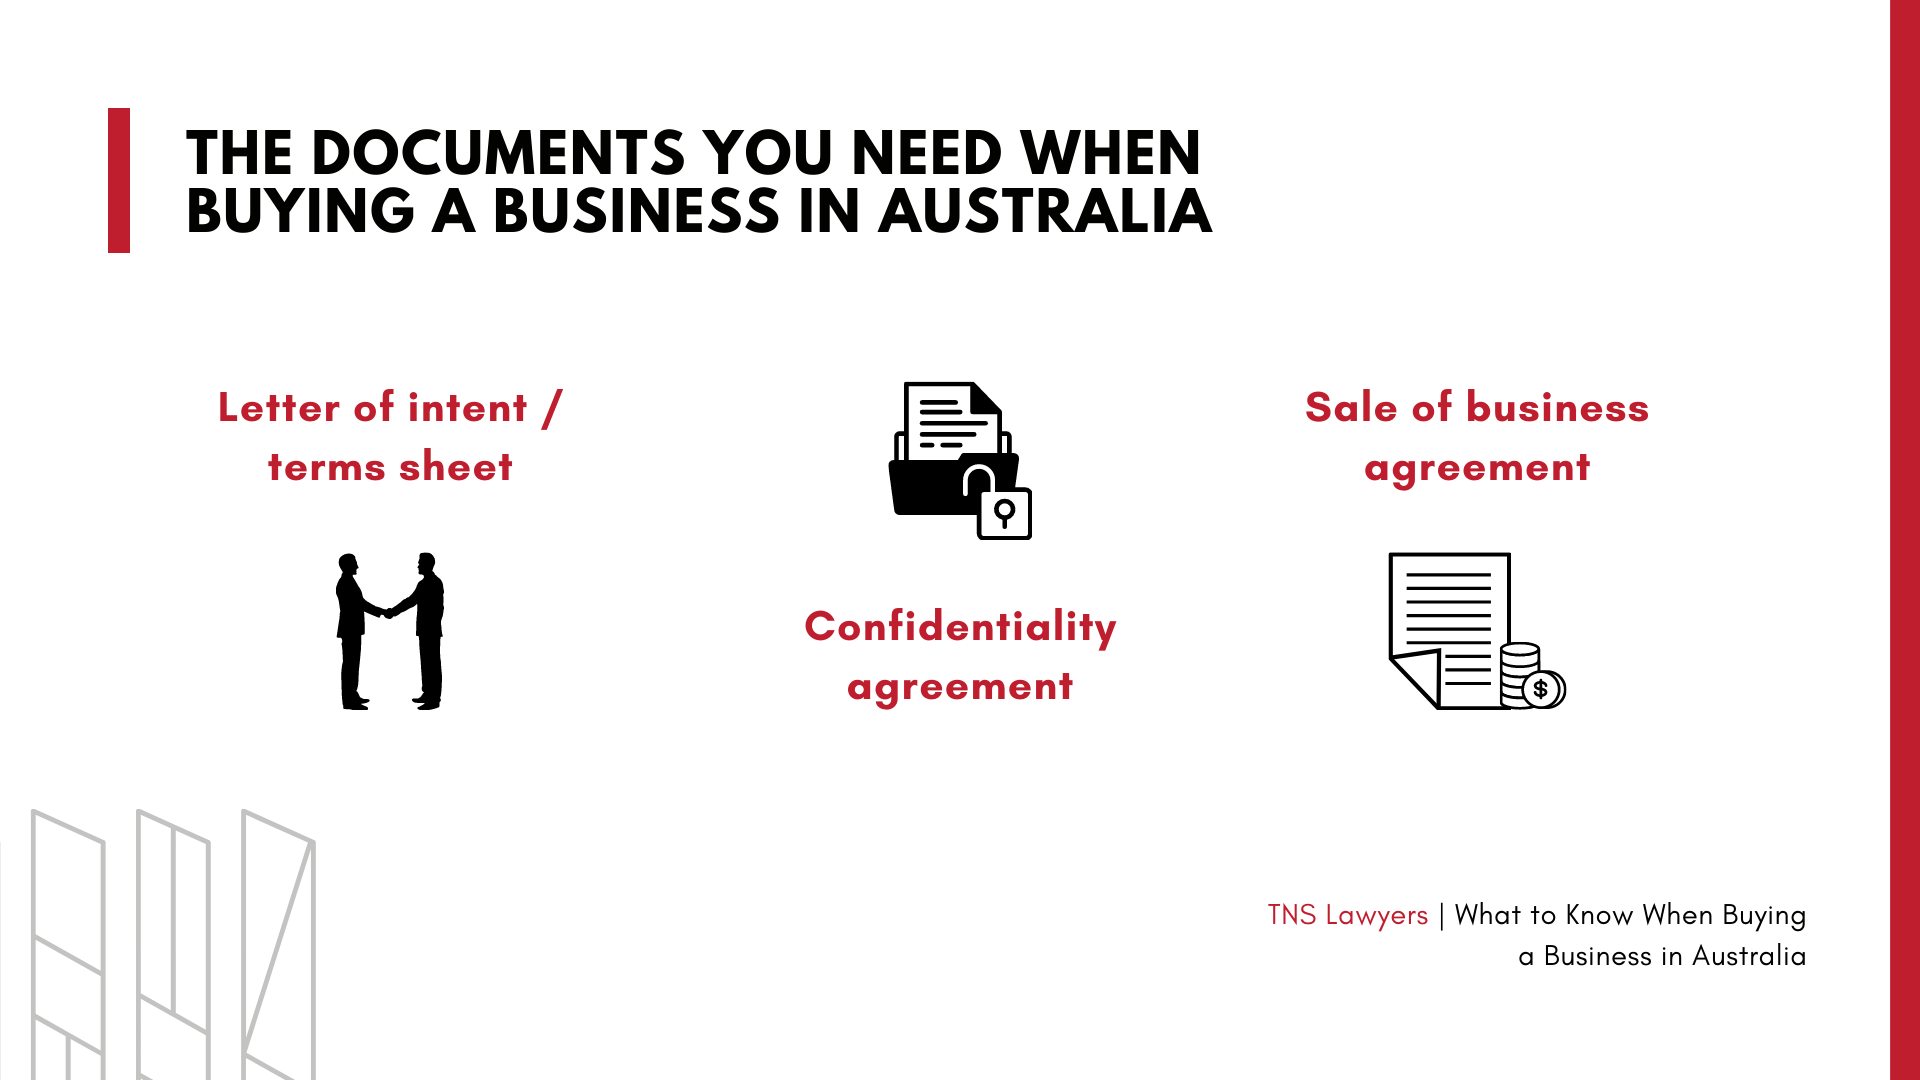 documents you need when buying a business in Australia